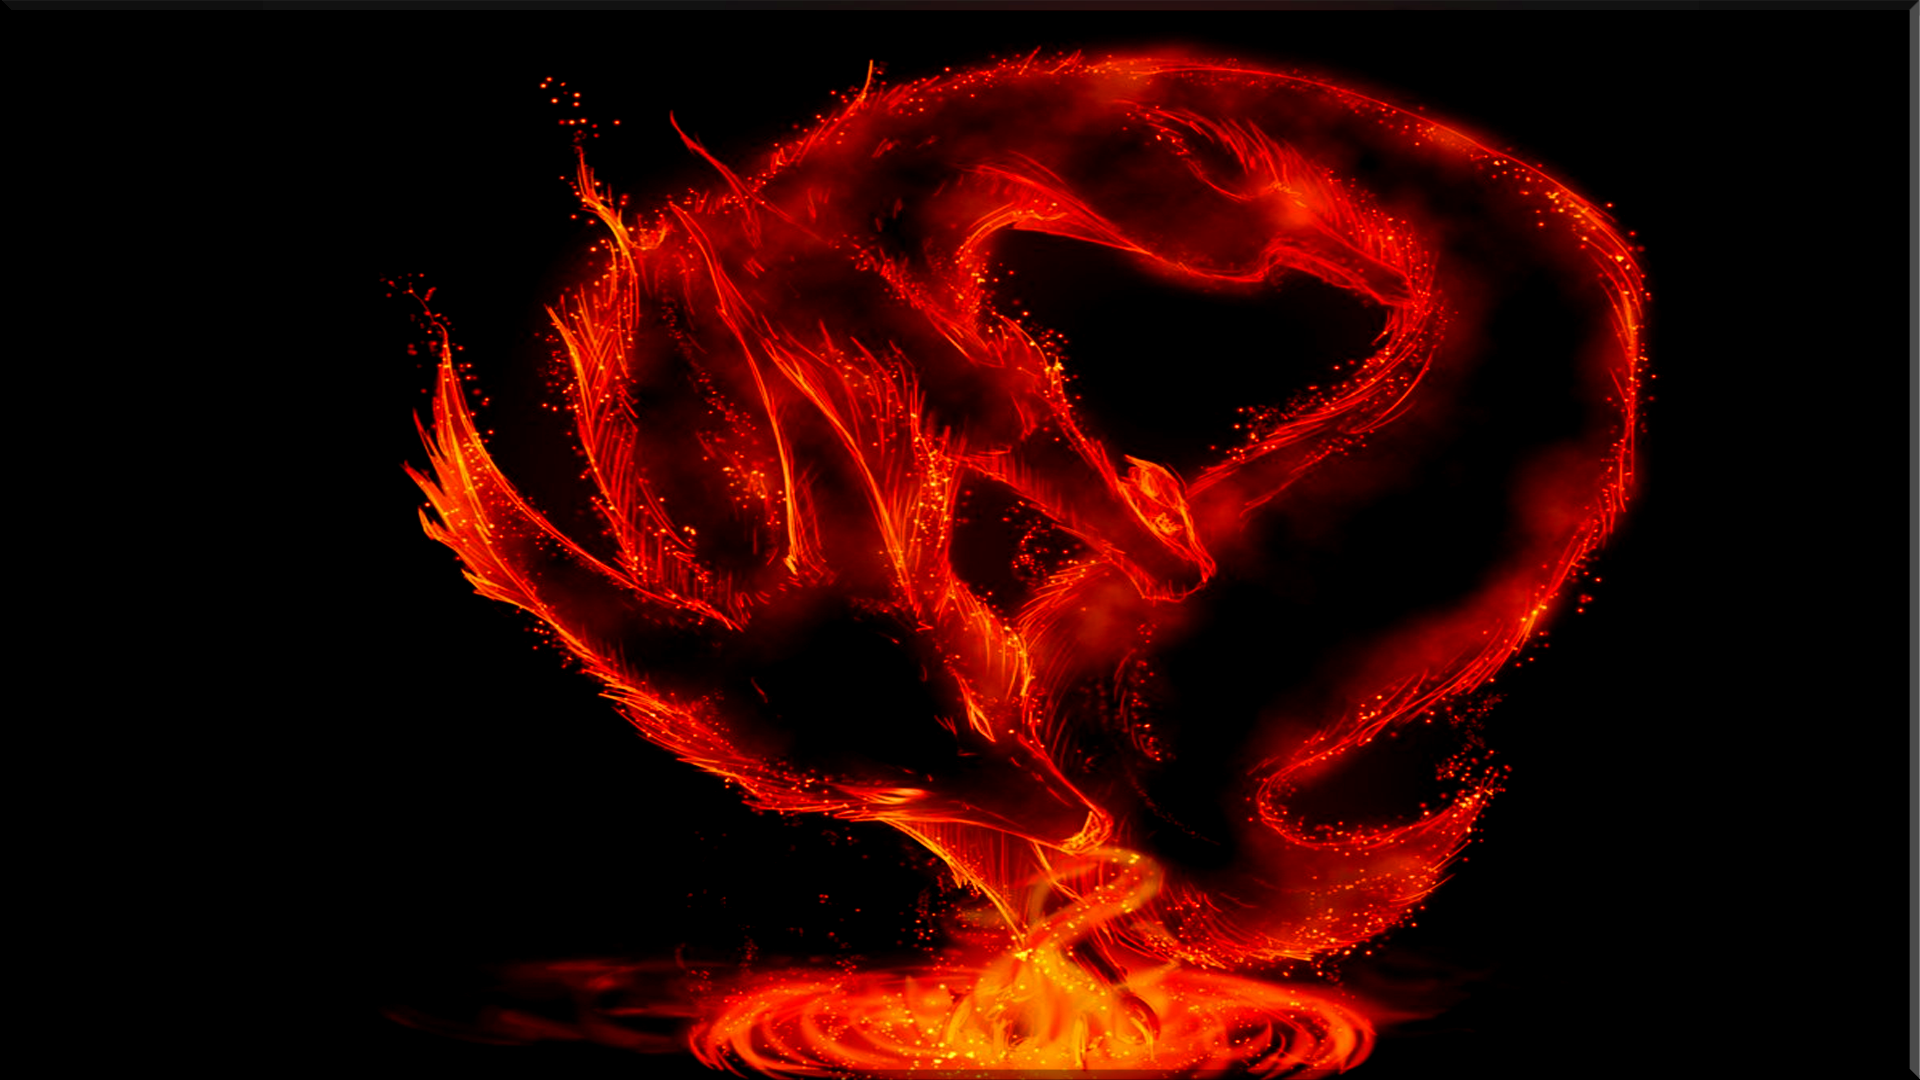 change fire phone background views 2756 how to change amazon fire 1920x1080